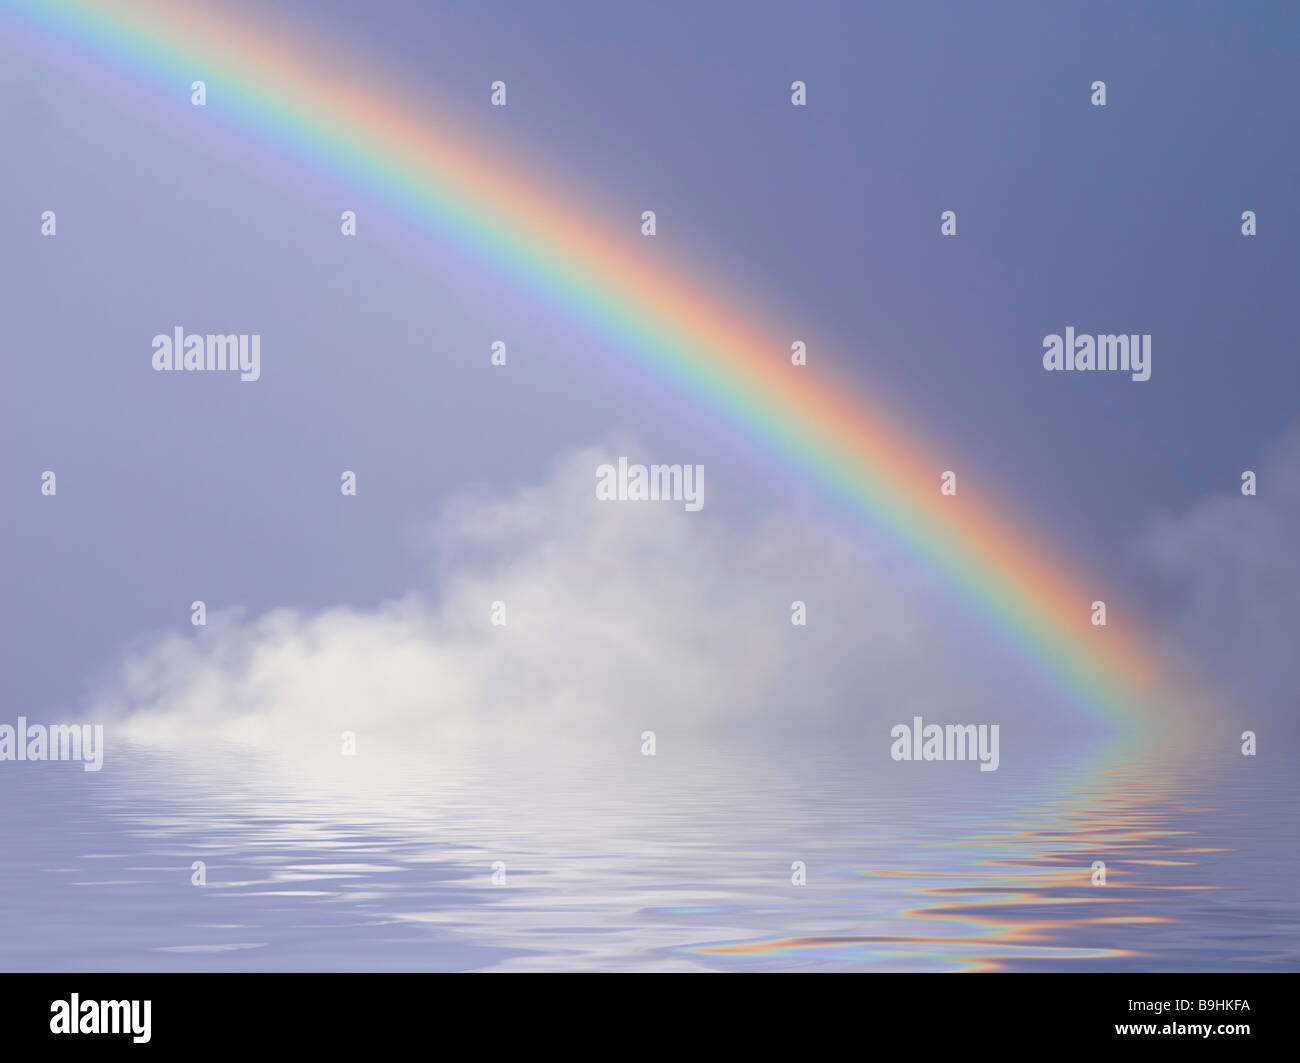 Rainbow with water reflection, background - Stock Image